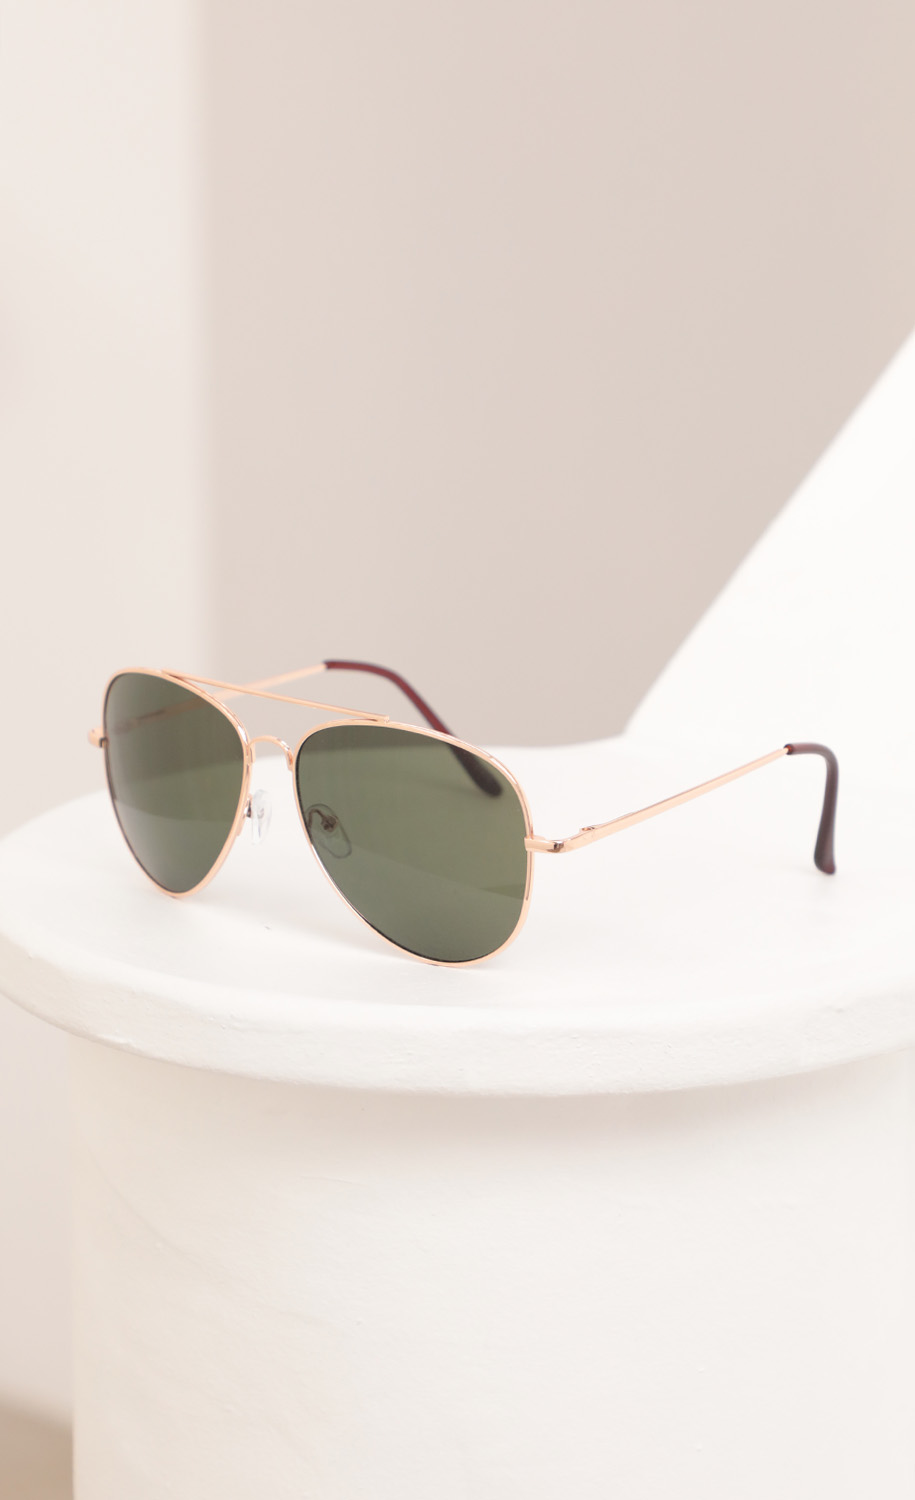 Mallory Aviator Sunglasses in Gold and Green